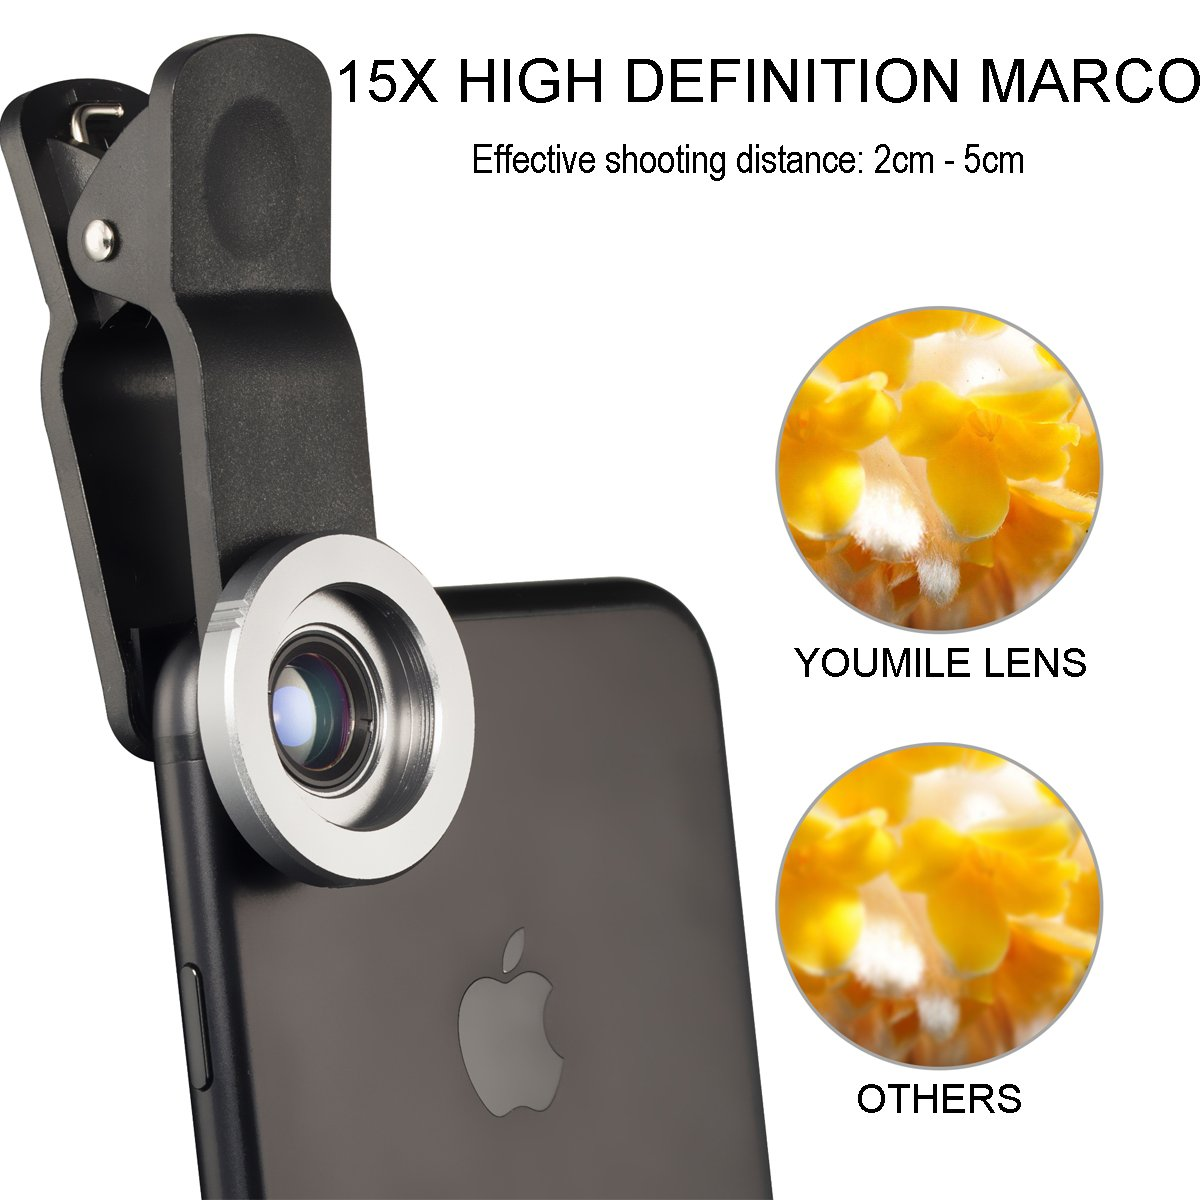 YOUMILE Cell Phone Camera Lens 2 in 1 Clip-on Lens Kit 112/° Super Wide Angle /& 15X Macro Phone Camera Lens Professional HD for iPhone 8 7 6s 6 Plus Samsung Android Smart Phone iPad Gray